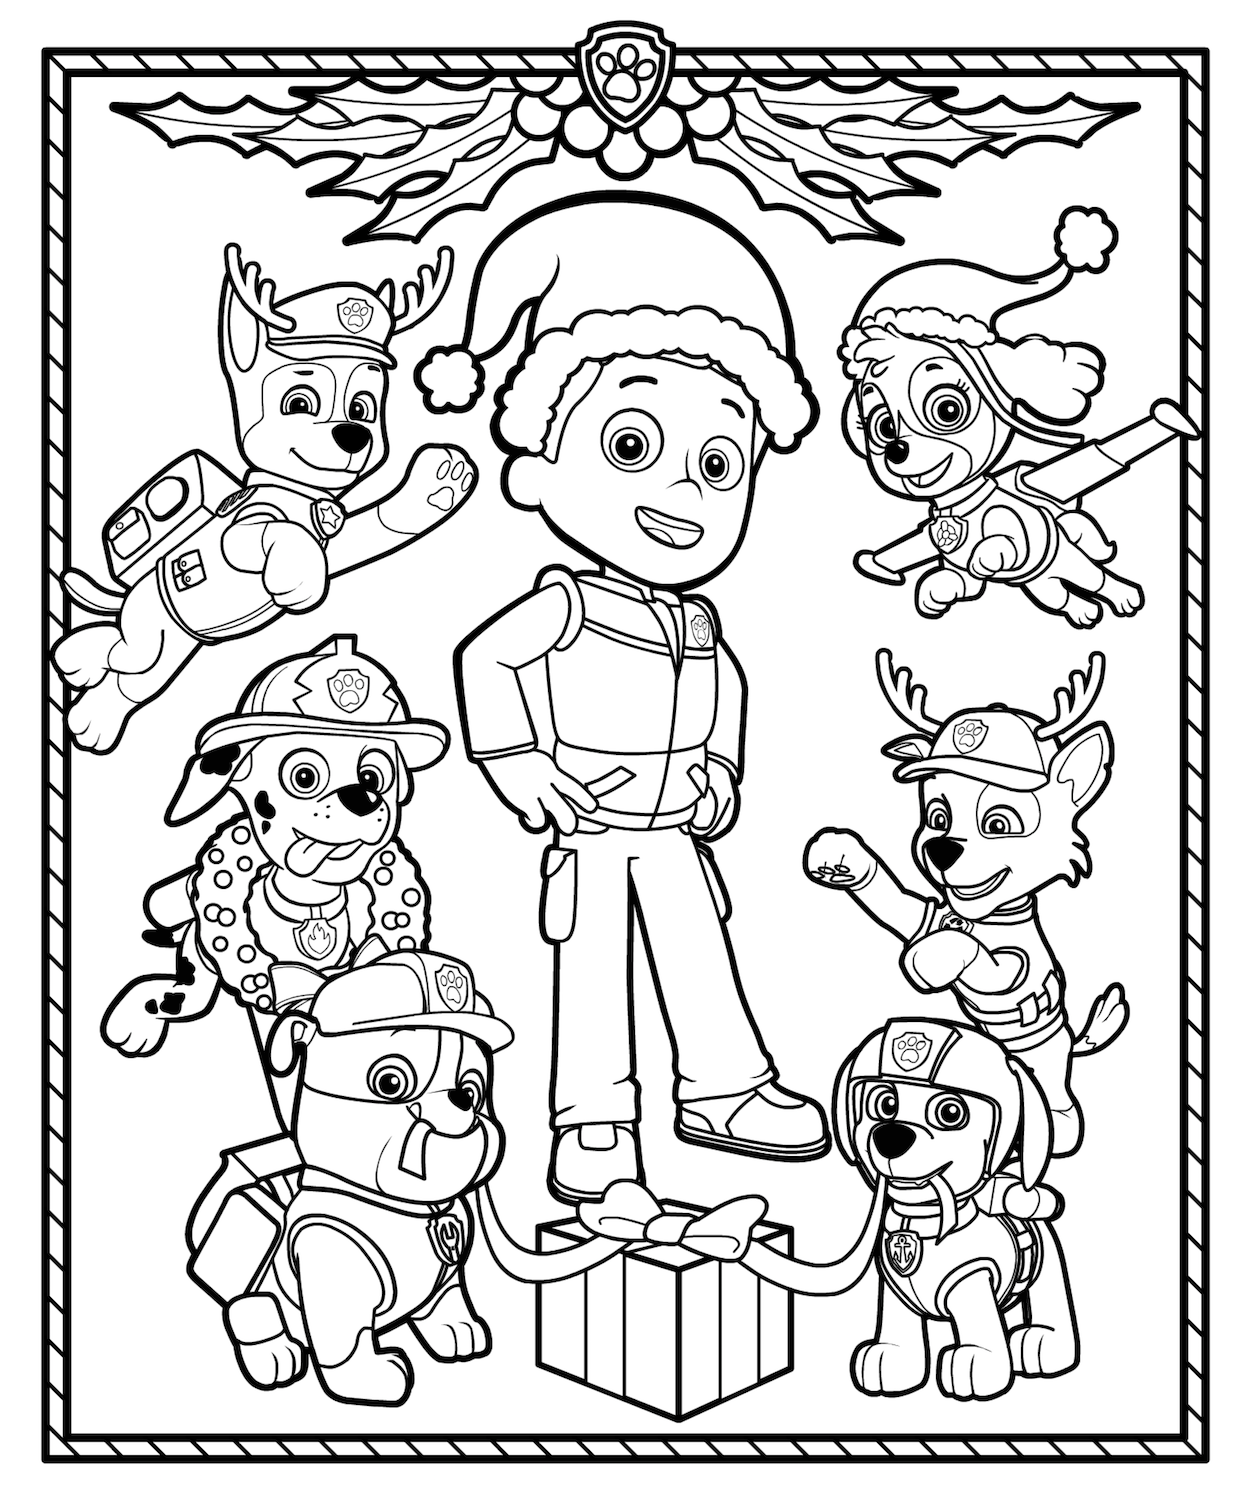 christmas coloring page doodl christmas wreath christmas adult coloring pages page coloring christmas